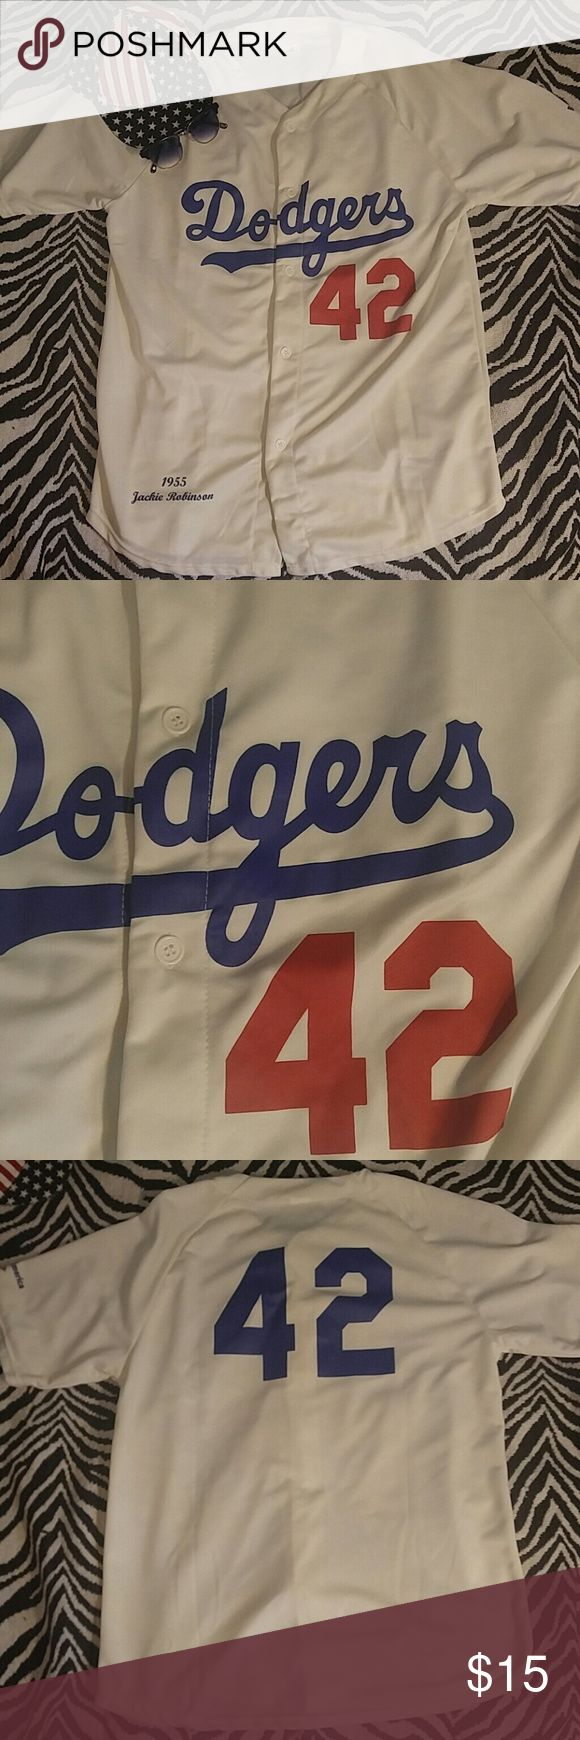 Los Angeles Jackie Robinson replica jersey XL Beautiful and flawless jersey commemorating one of the greatest heroes and icons in the history of sports. Lightweight jersey perfect for catching games all summer! I believe this was a Dodgers stadium promotional item making it a great collectible. Flawless, like new condition! Shirts